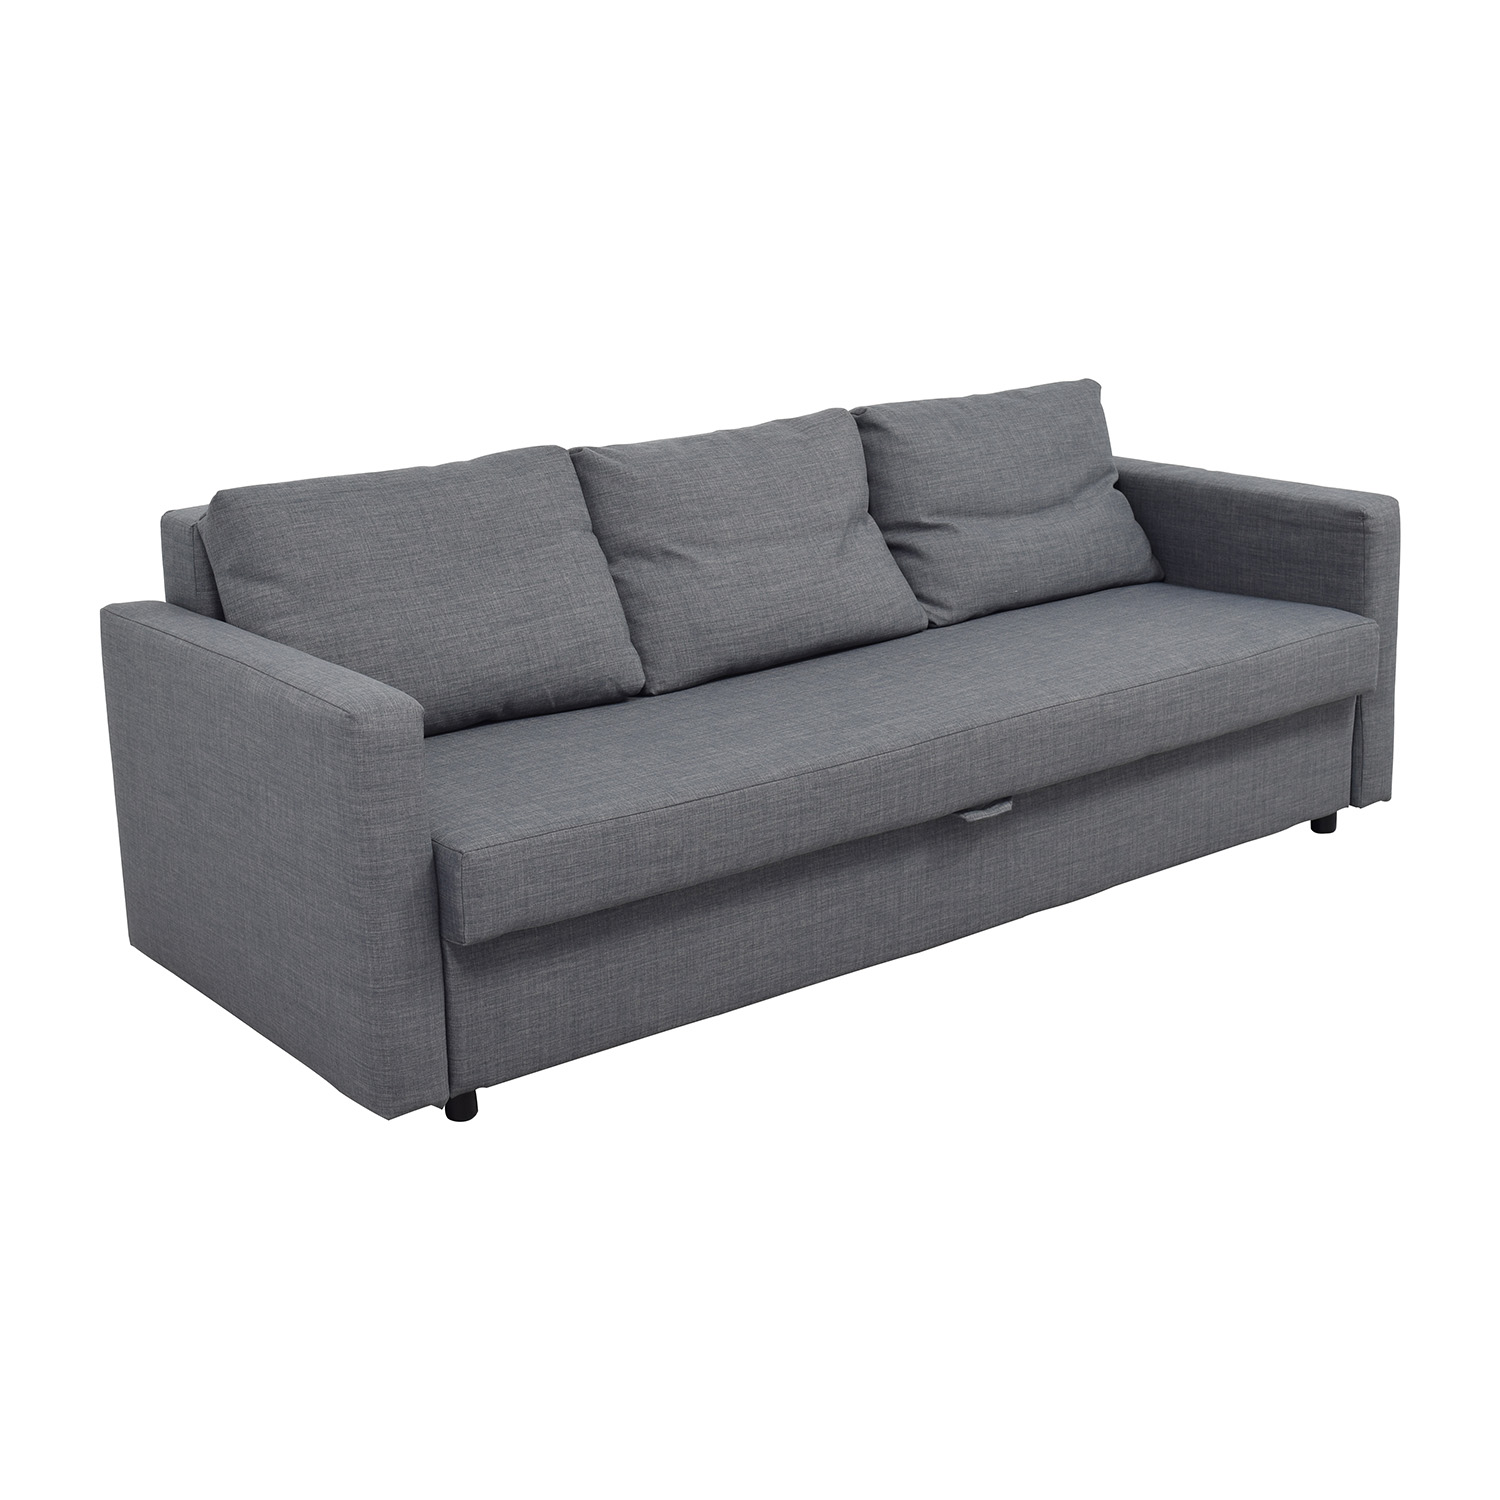 Ikea Sofa Grey Klippan Cover Two Seat Sofa Flackarp Medium